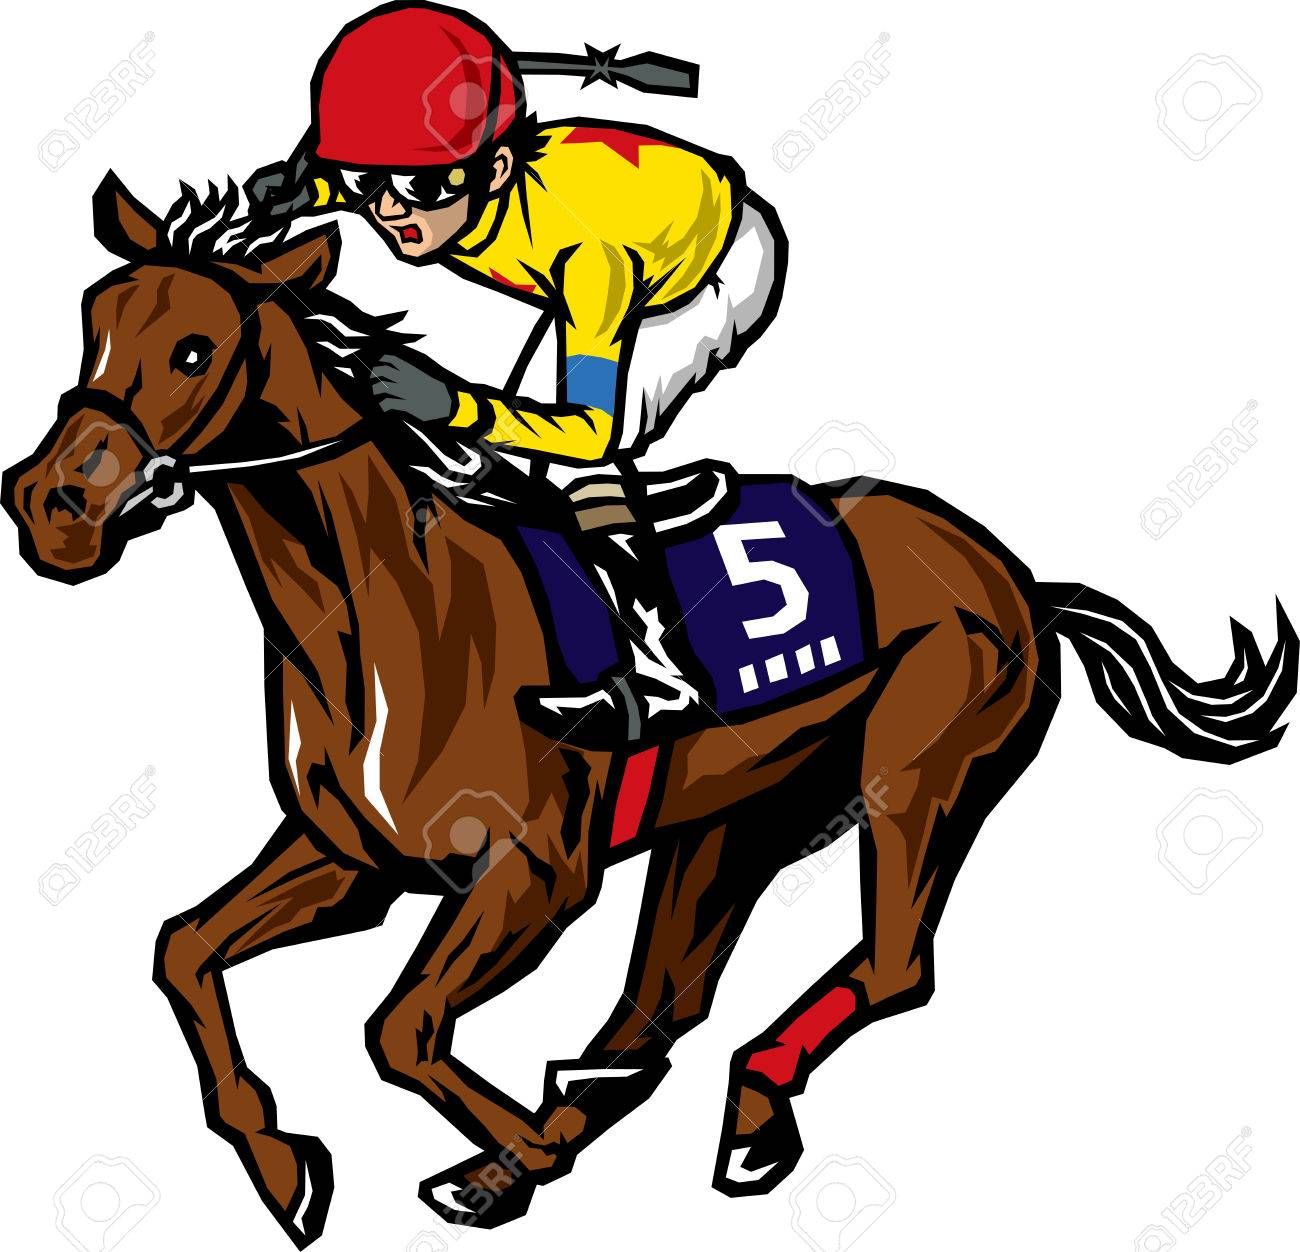 Horse racing images clipart free clip royalty free library Race Horse Clipart | Free download best Race Horse Clipart ... clip royalty free library